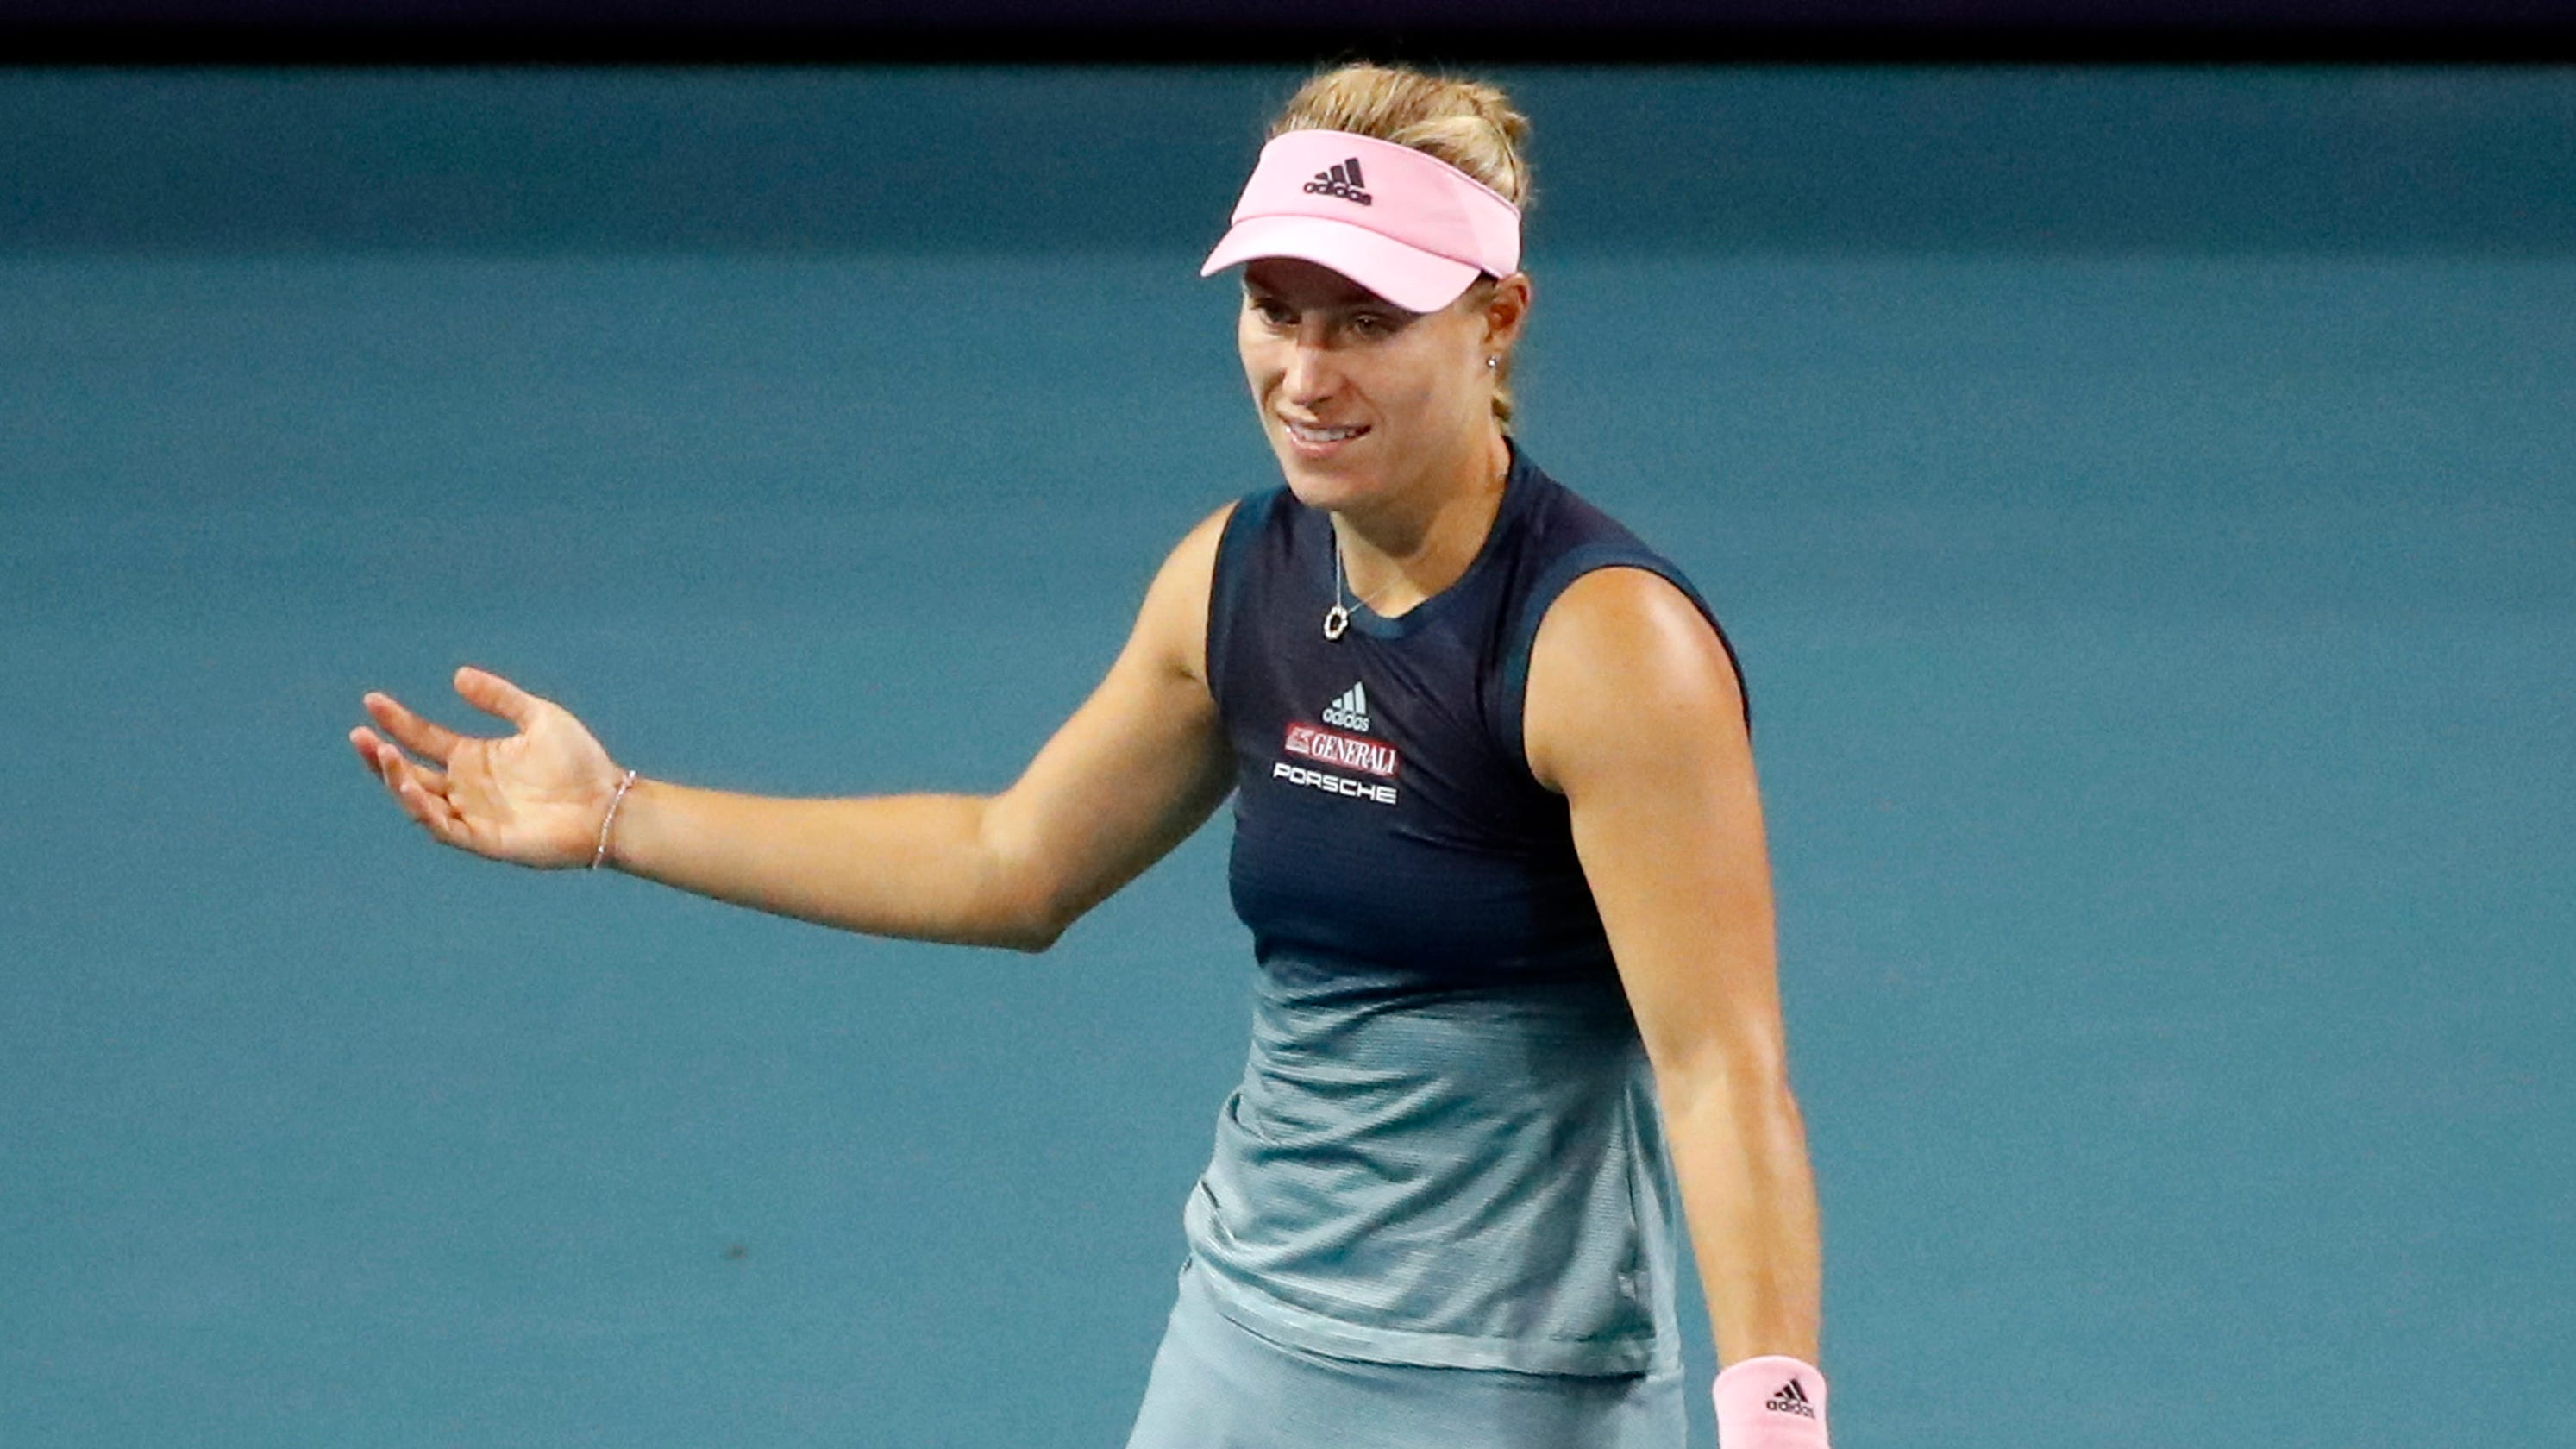 Angelique Kerber tells Bianca Andreescu she's a 'drama queen' after loss